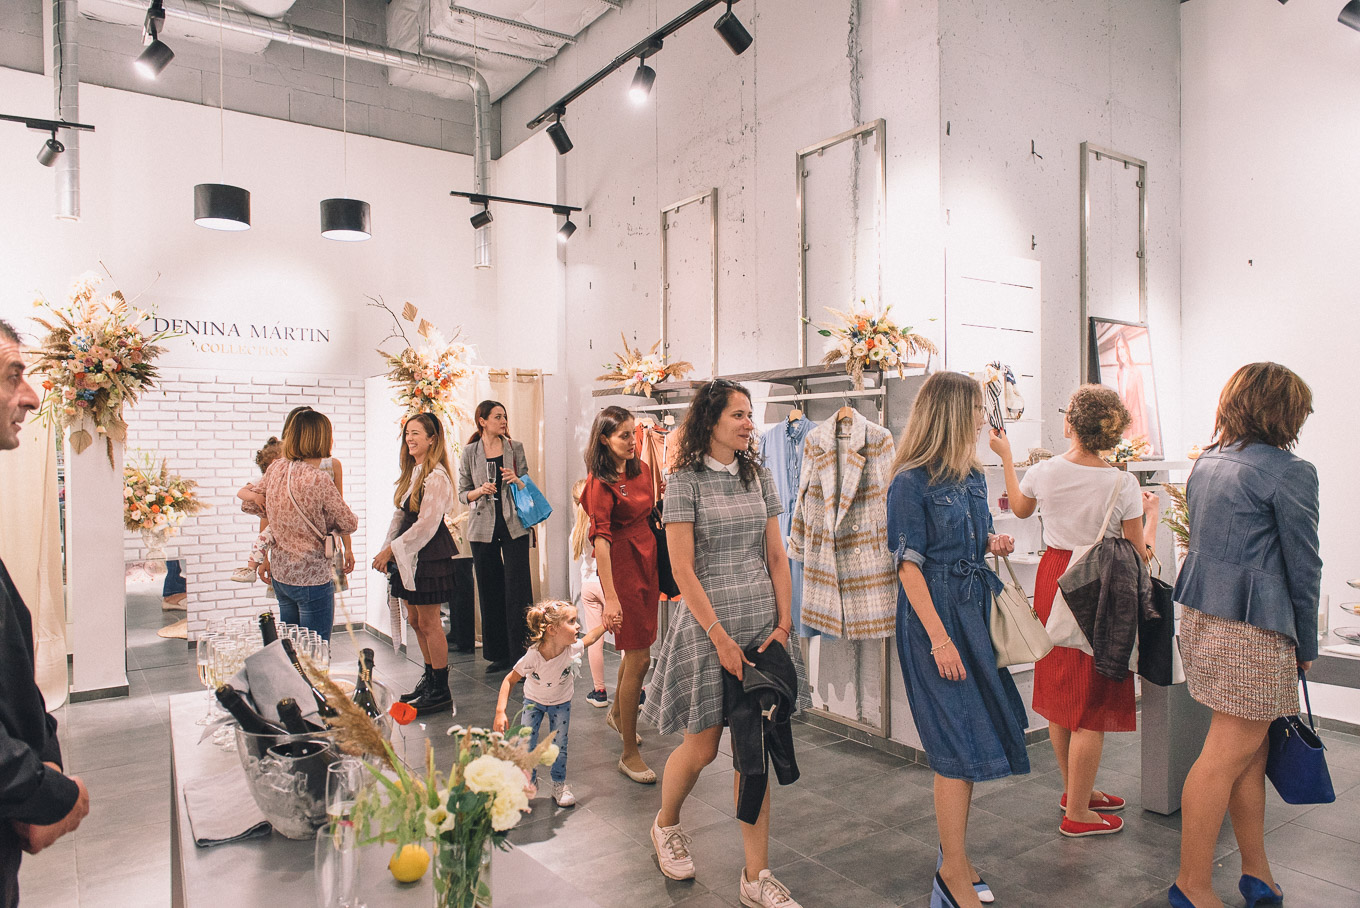 our Denina Martin Collection event